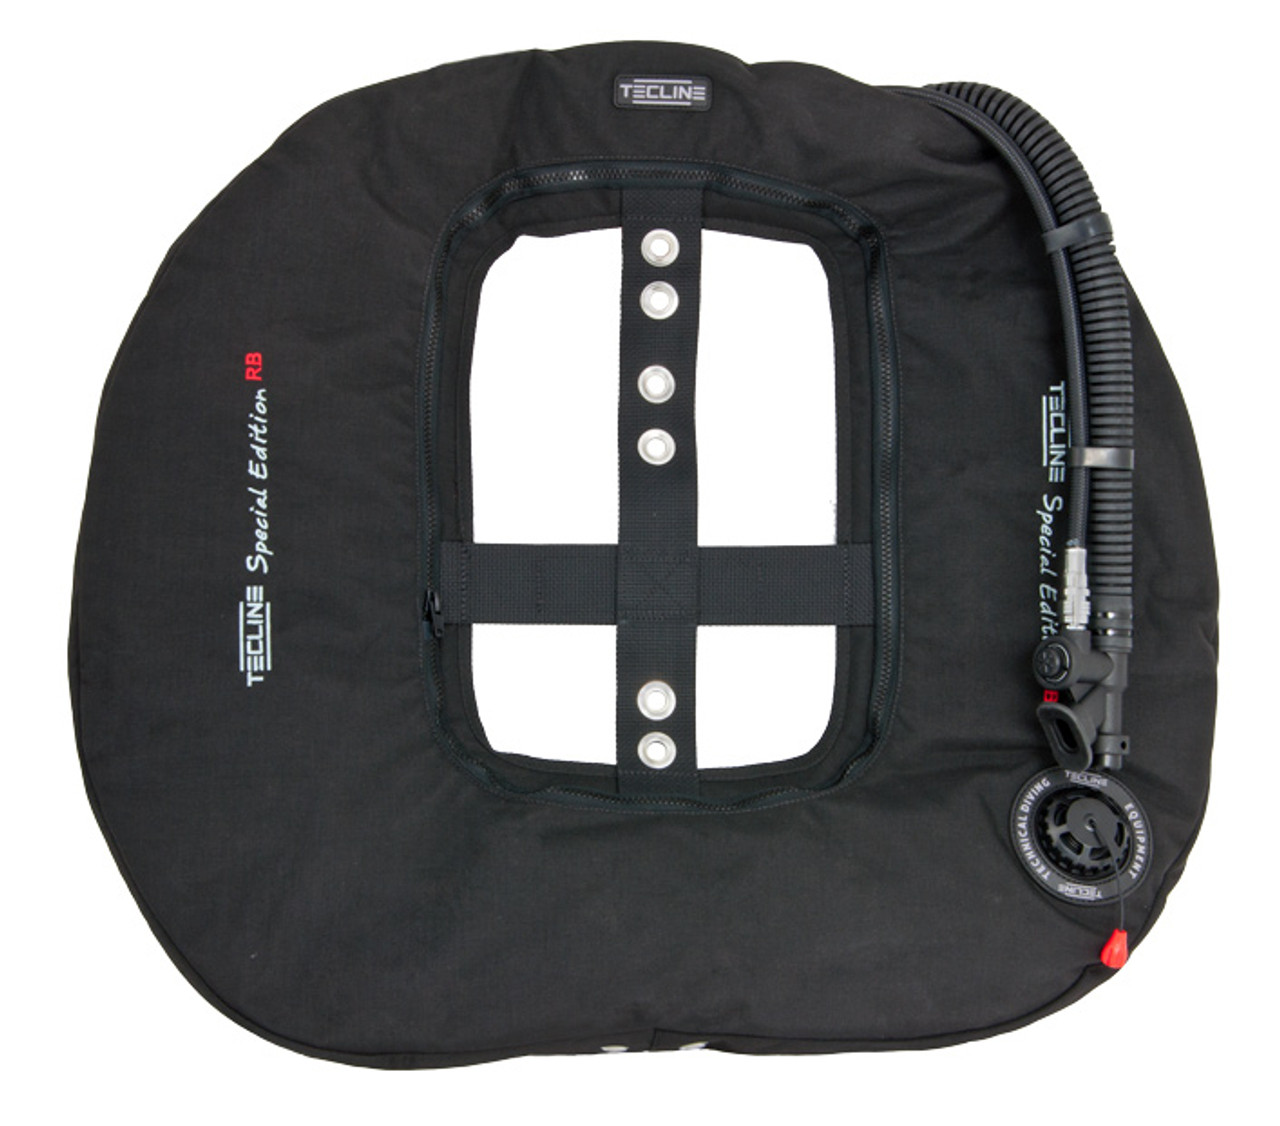 Tecline Donut 22 Special Edition Rebreather